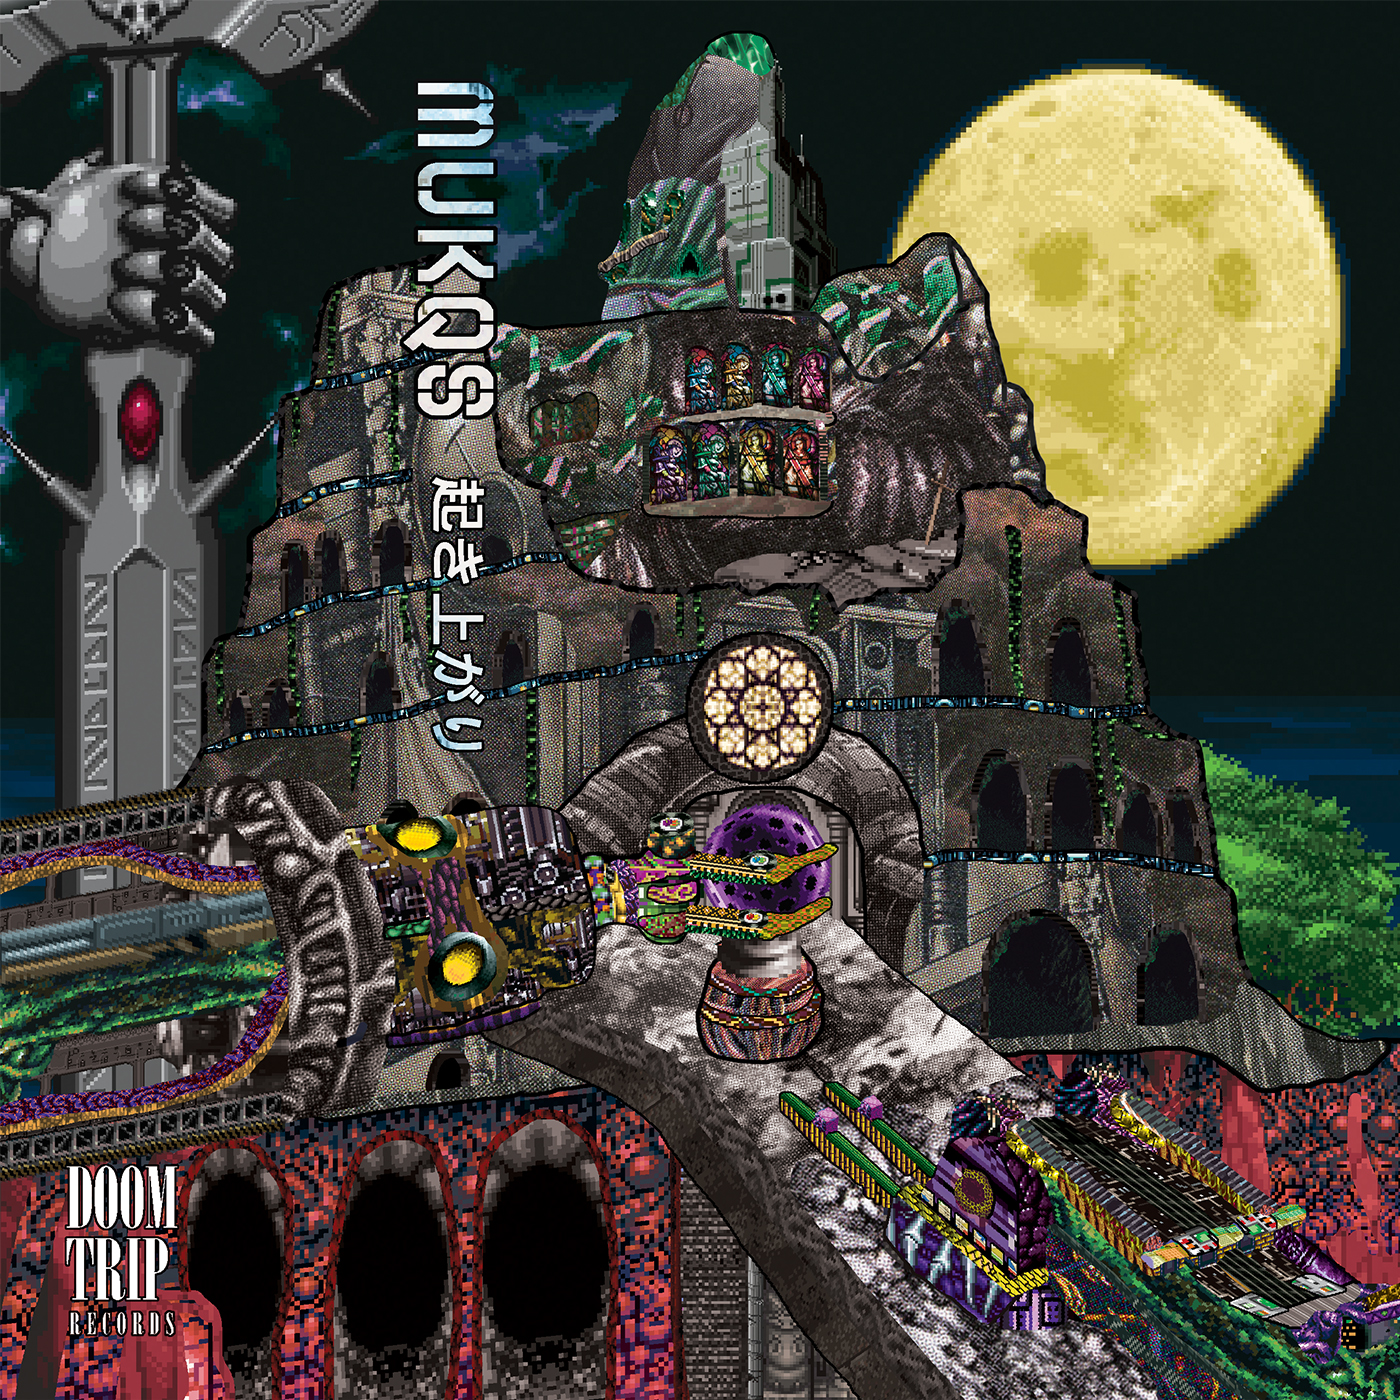 """Mukqs - """"起き上がり""""  (Doom Trip Records)  Mukqs, aka Maxwell Allison - one half of the depraved geniuses behind mind-altering Chicago tape label Hausu Mountain, has released his latest chaotic masterpiece, 起き上がり , on Doom Trip Records.  Prepare for a variety show filled with hard synth loops, plundered video game soundtracks and ambient soundscapes filled with strange, geometric ear puzzels from parallel dimensions.  What is the plot of this twisted story? As the amazing cover art alludes, this tape is an anime dreamscape, where a bright, young hero drives an impossibly futuristic car from an oversanitized high school to an apocalyptic boss battle in the heart of the city, and is aided in ridding the world of some villianous power with the help of some unlikely allies.  Amid the pulsating beats, charge through tunnels of icy smooth synths worthy of the most spiky haircuts and pointed chins. Prepare your sarcastic, quick-witted, and yet unlikely champion for a battle royale where the fate of the world hangs in the balance. Beware, there may be all manner of zombies. It may even be crucial to summon the most frightening monsters to help overcome the enemy, but overcome it you must.  All the while, retain a sense of timeless style. Even after the world is saved, math class awaits.  https://doomtrip.bandcamp.com/album/-"""